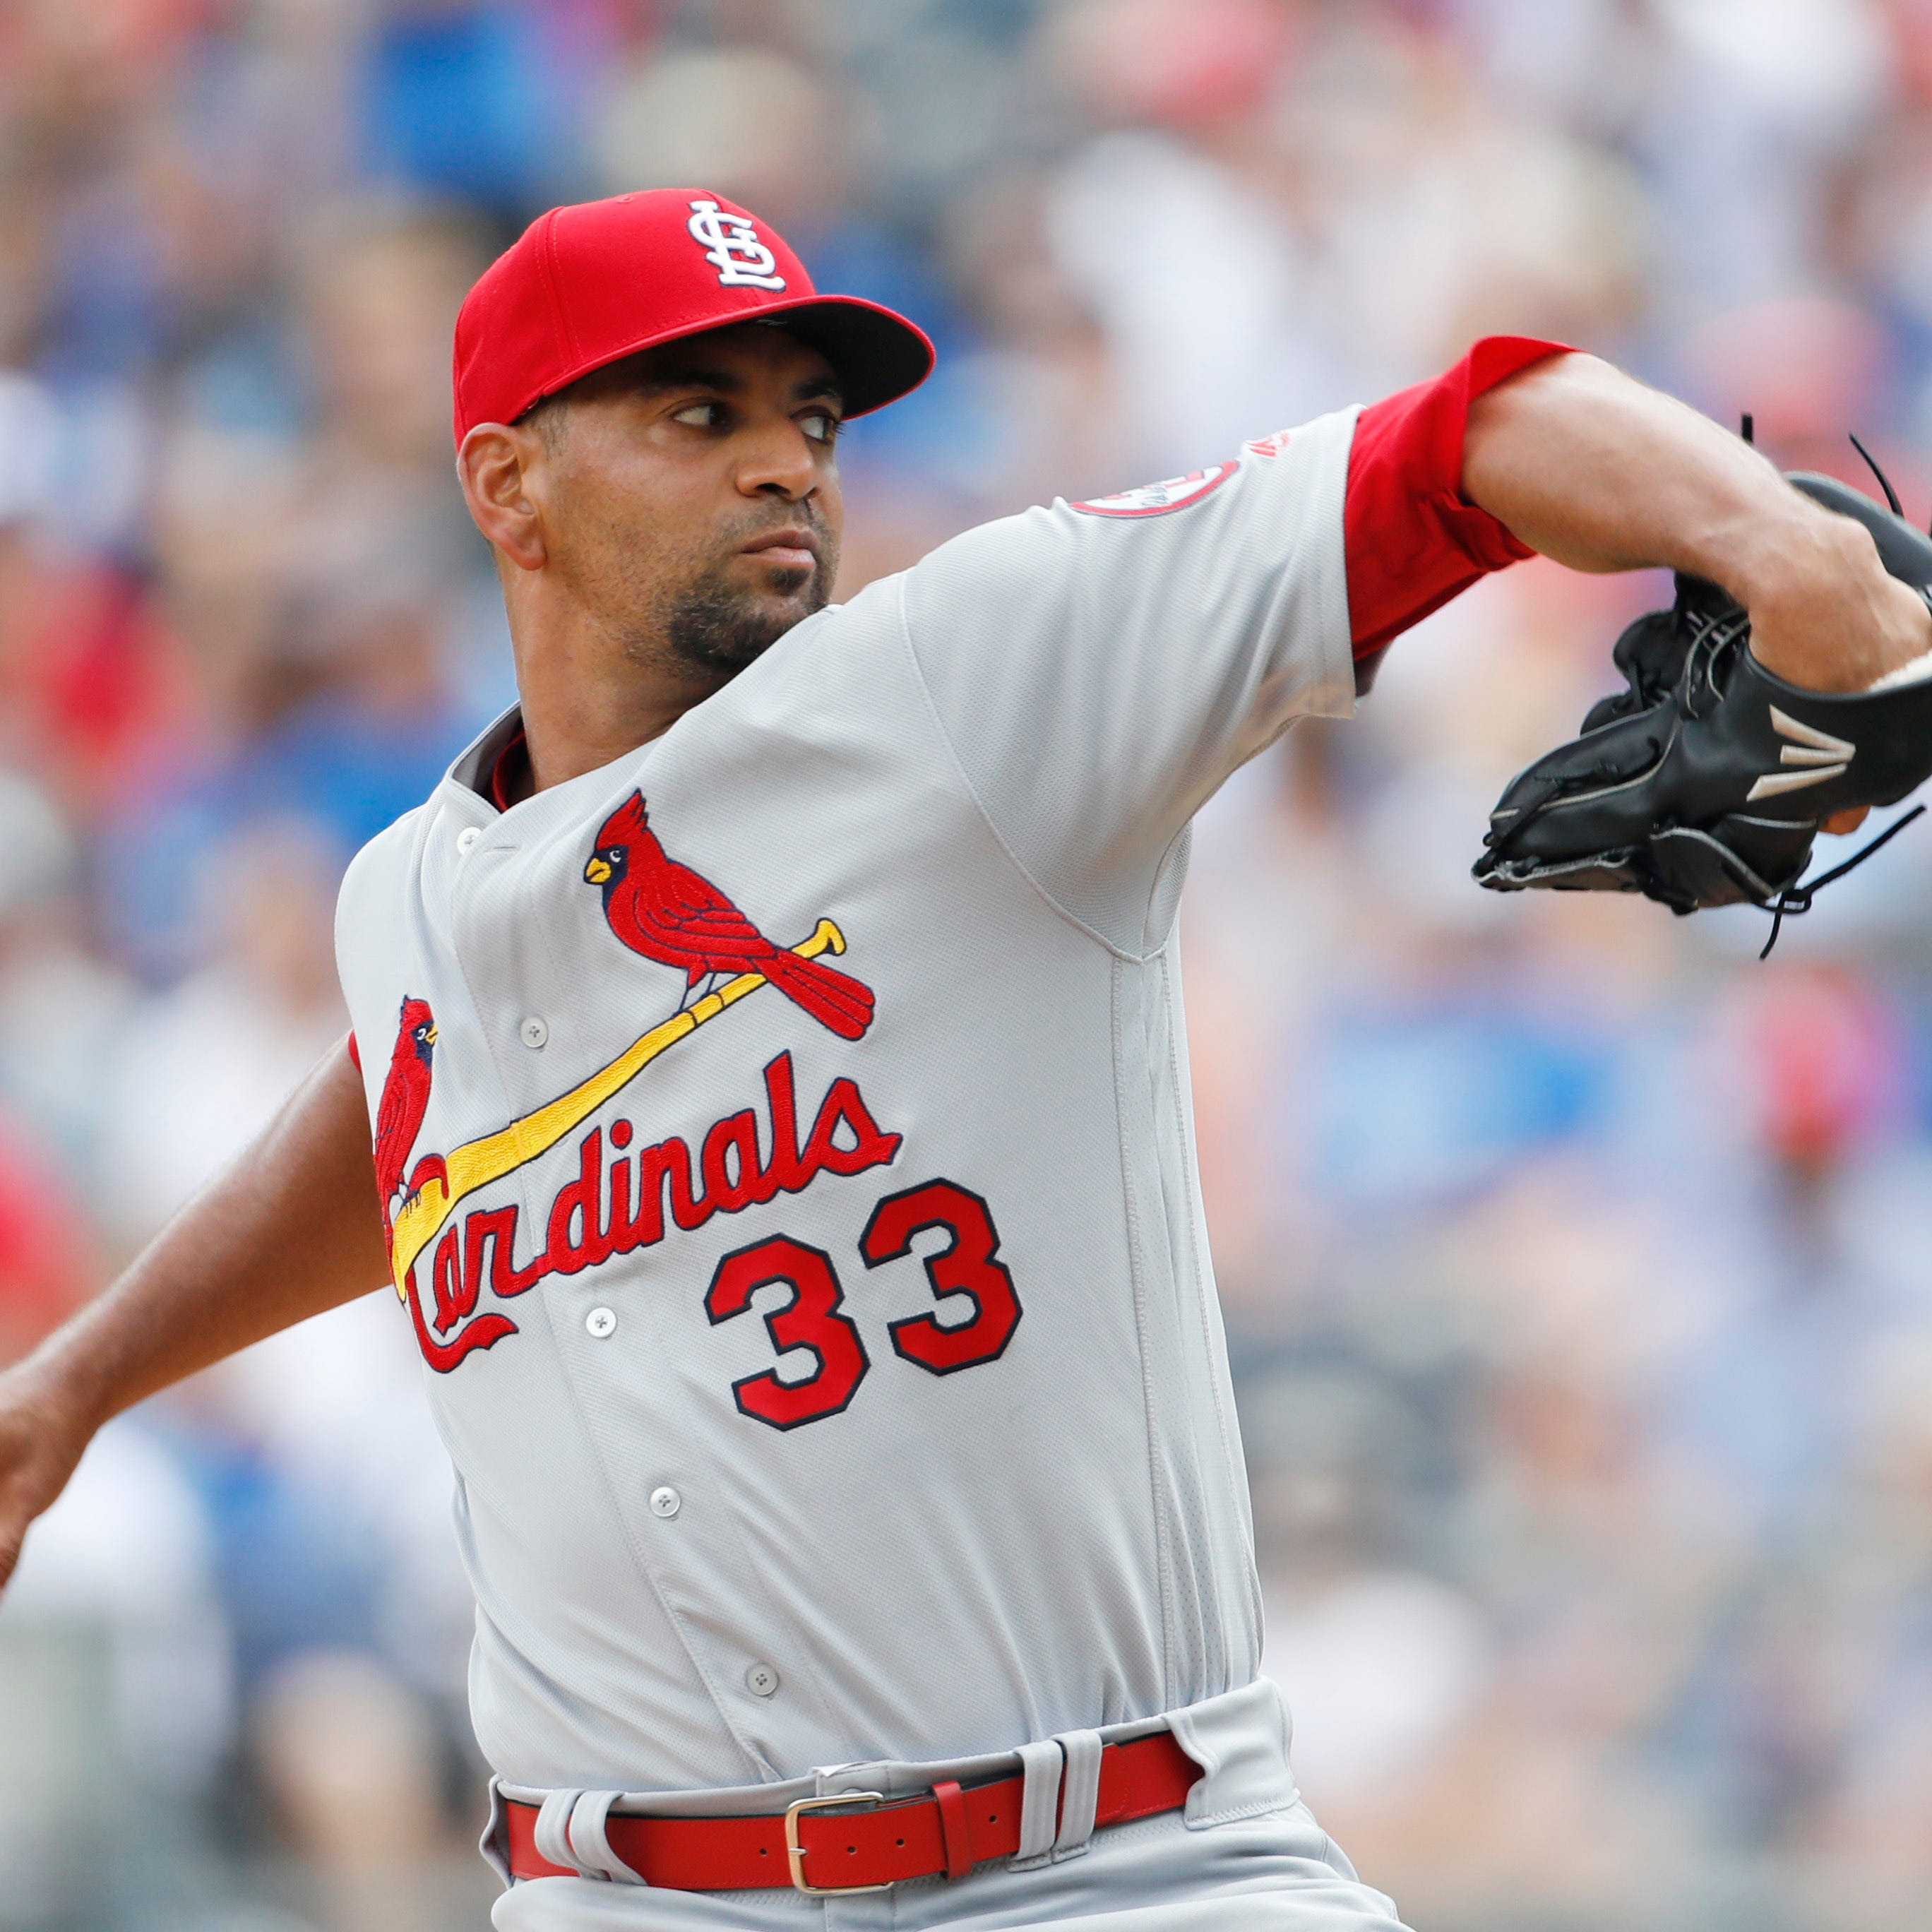 Tigers agree to terms with RHP Tyson Ross on 1-year, $5.75M deal